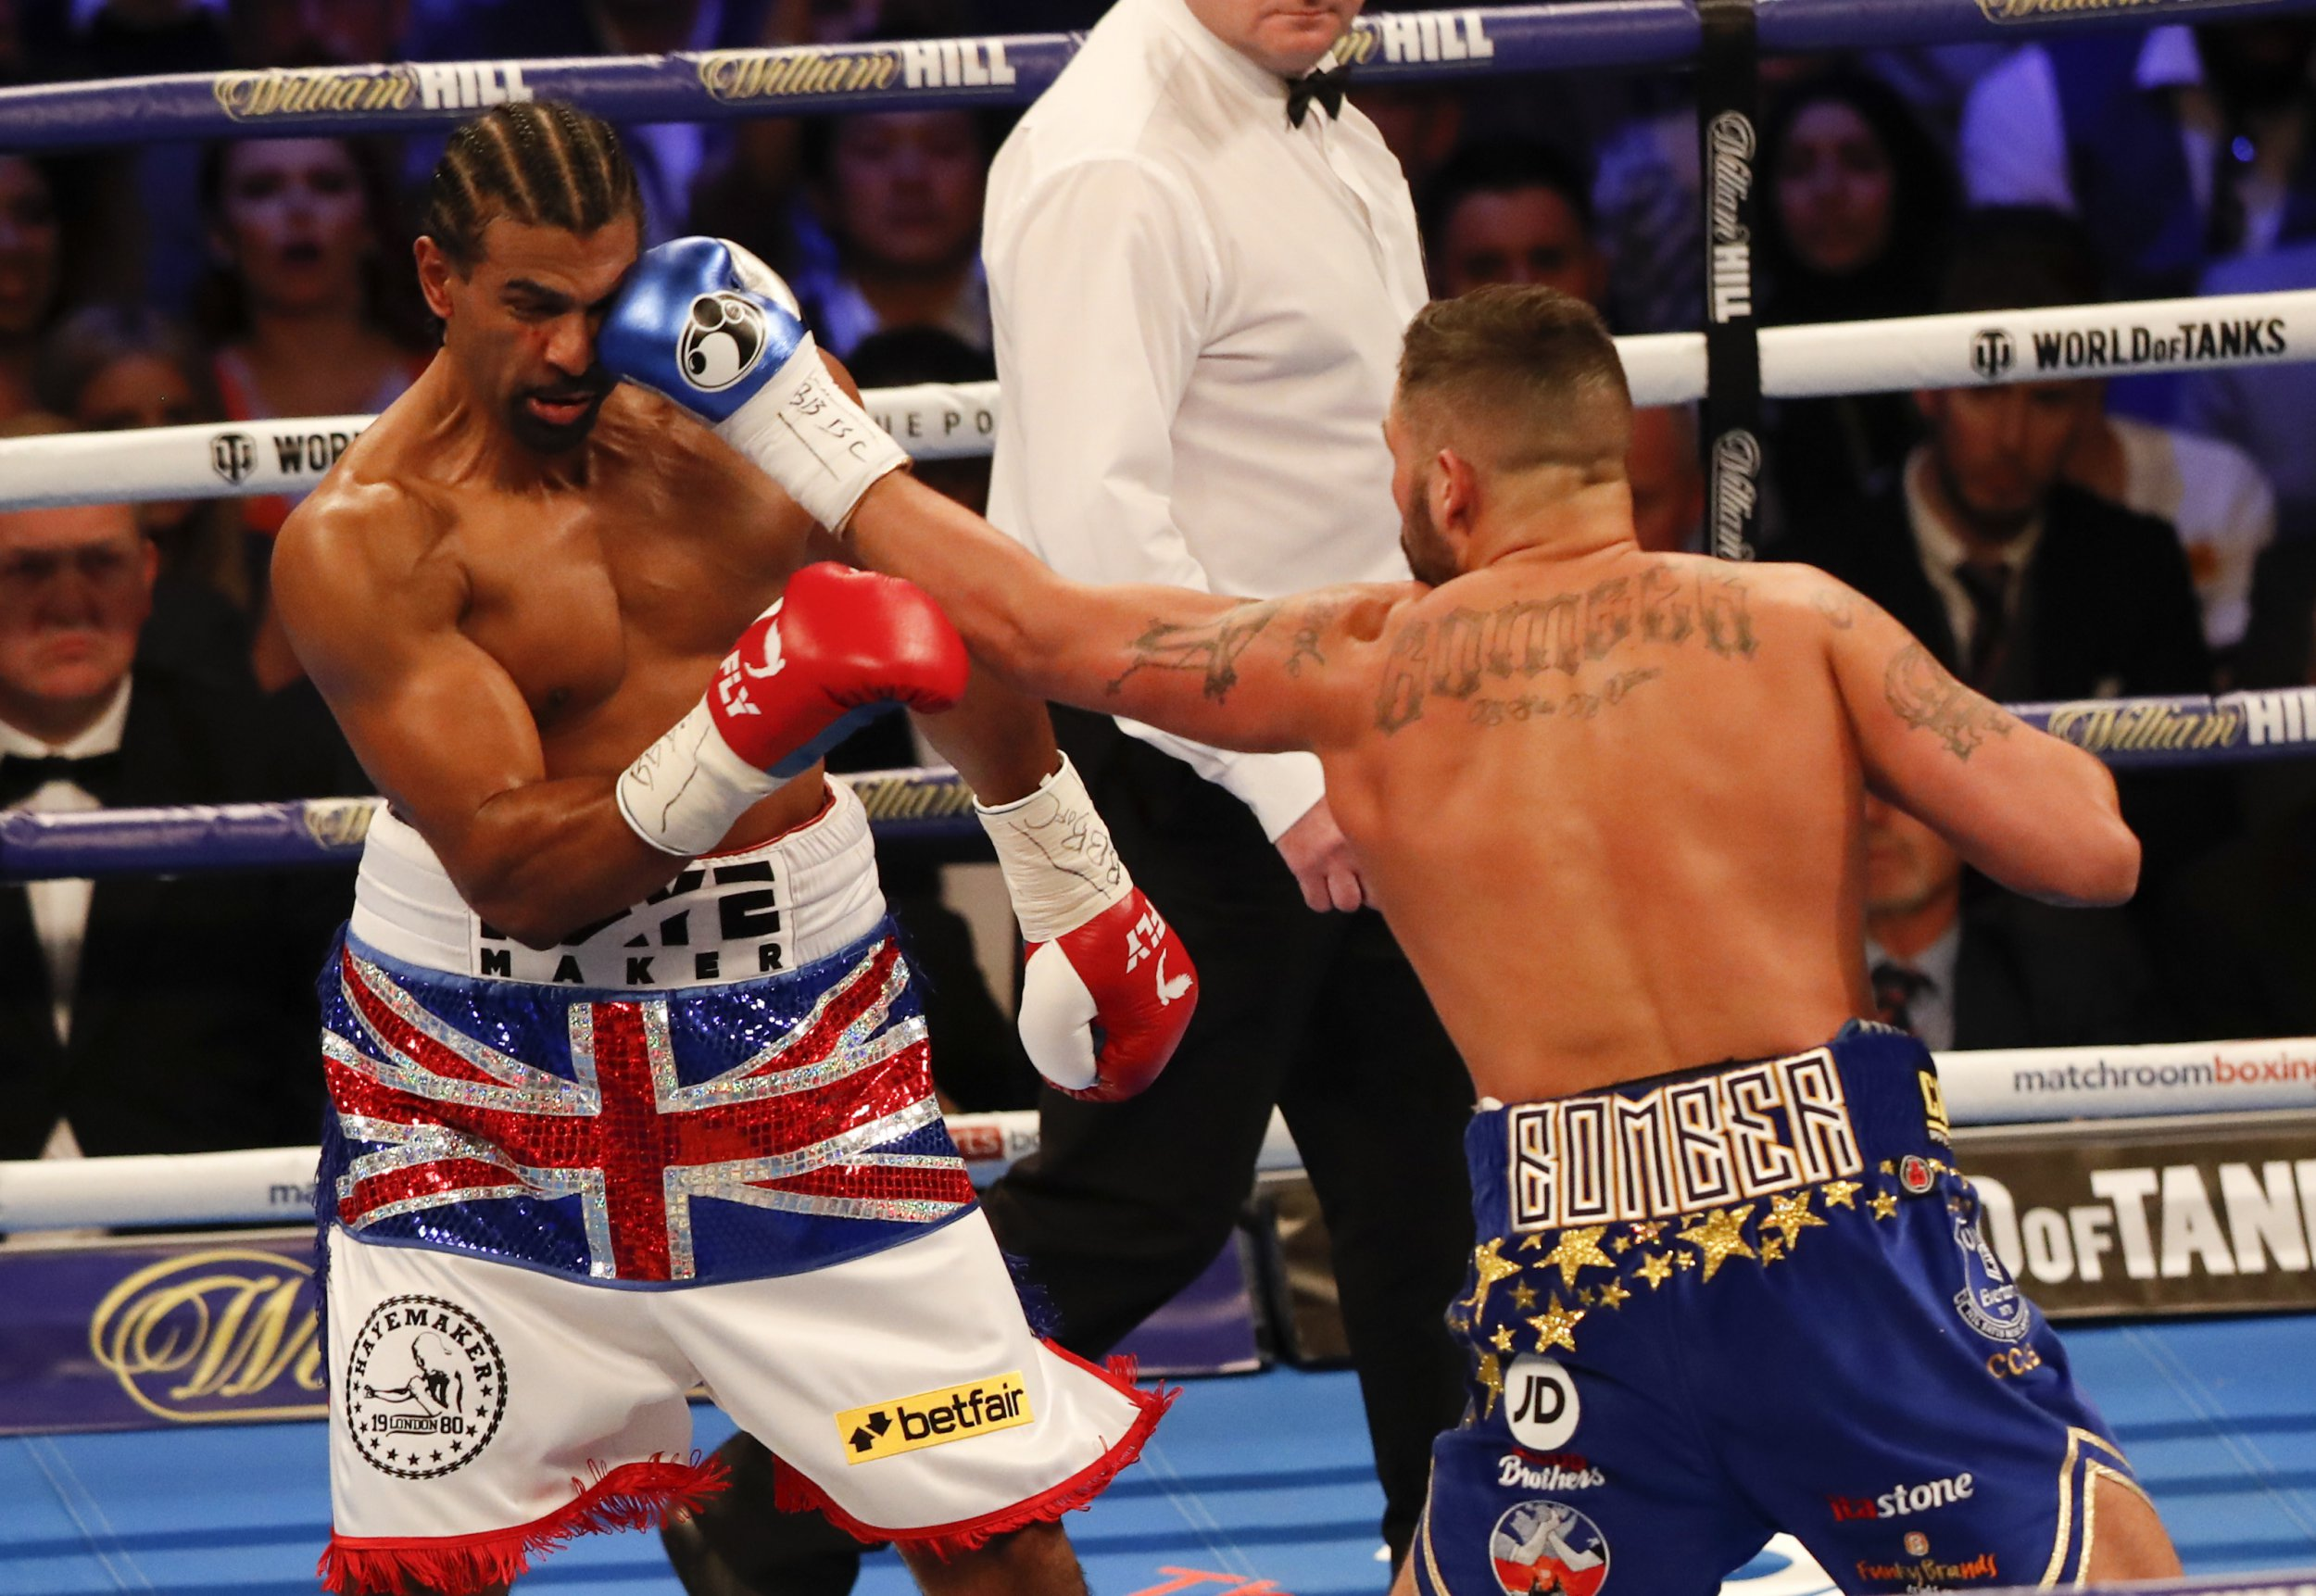 Britain's Tony Bellew, right, sends a left to his countryman David Haye during the boxing heavyweight rematch bout between Tony Bellew and David Haye at the O2 Arena in London, Saturday, May 5, 2018. (AP Photo/Frank Augstein)